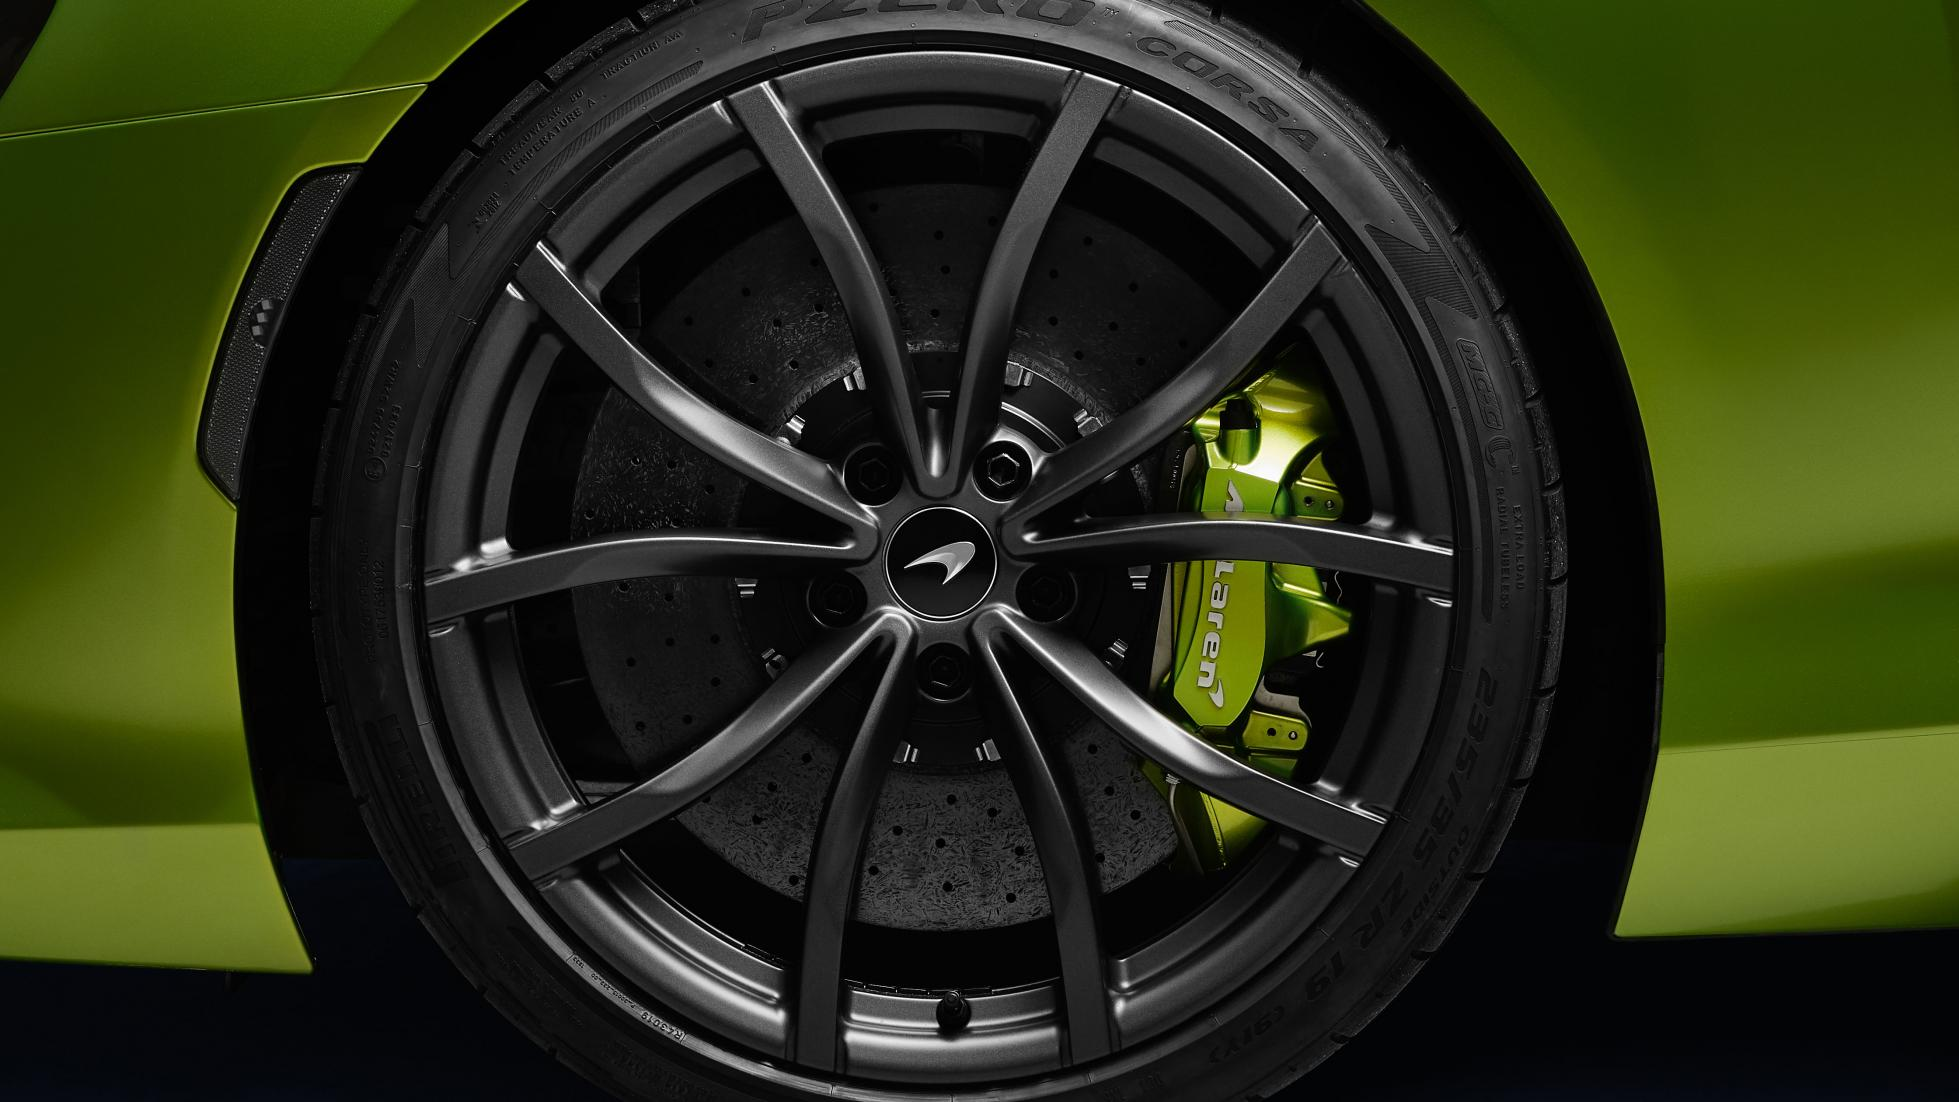 McLaren Artura in Flux Green wheels